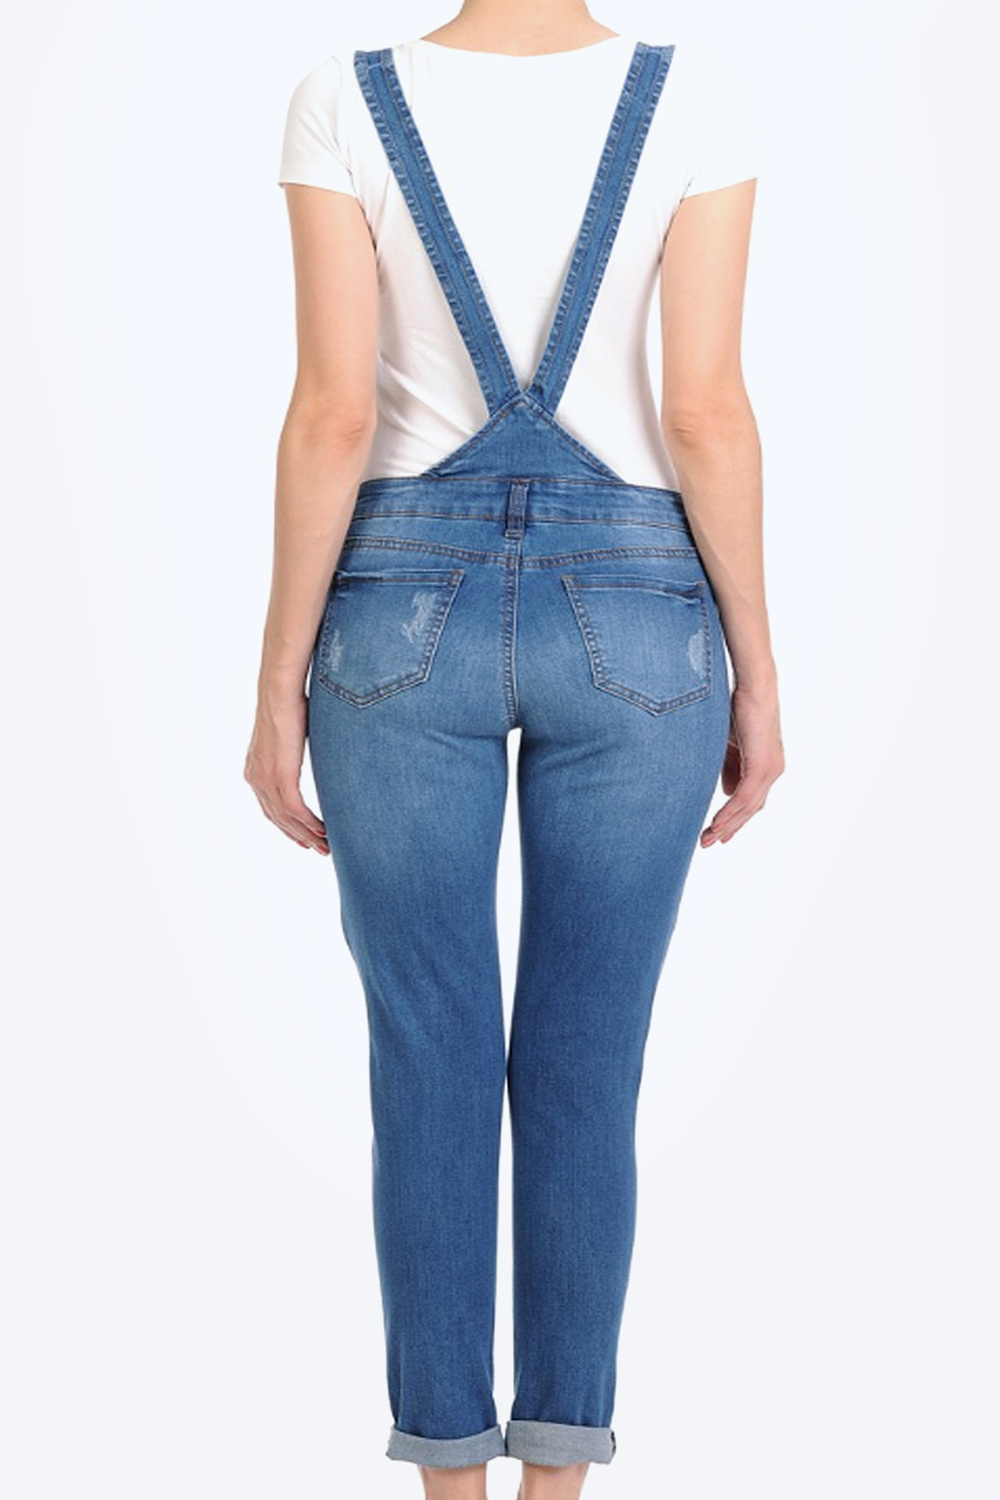 Ditsressed Stretch Twill Overalls